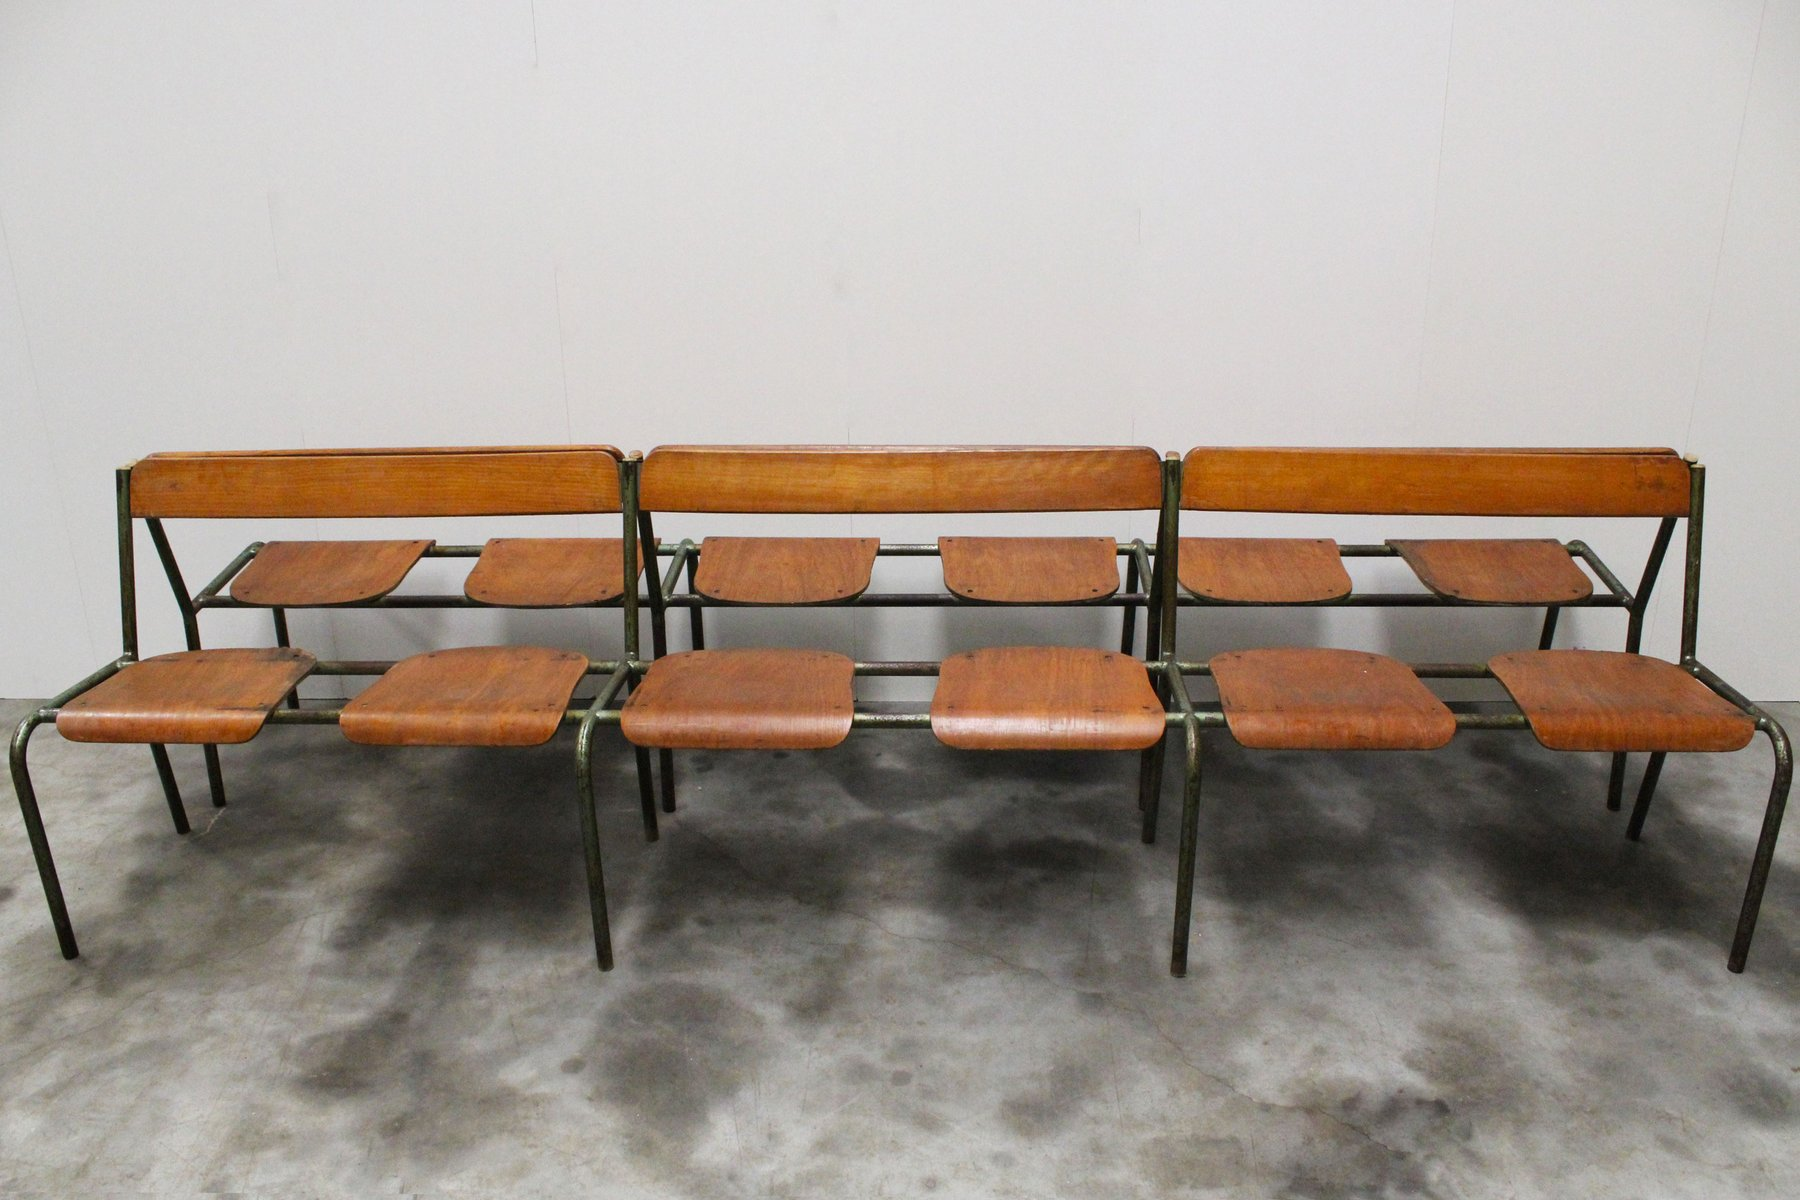 Large French Industrial Bench From Mullca 1950s For Sale At Pamono